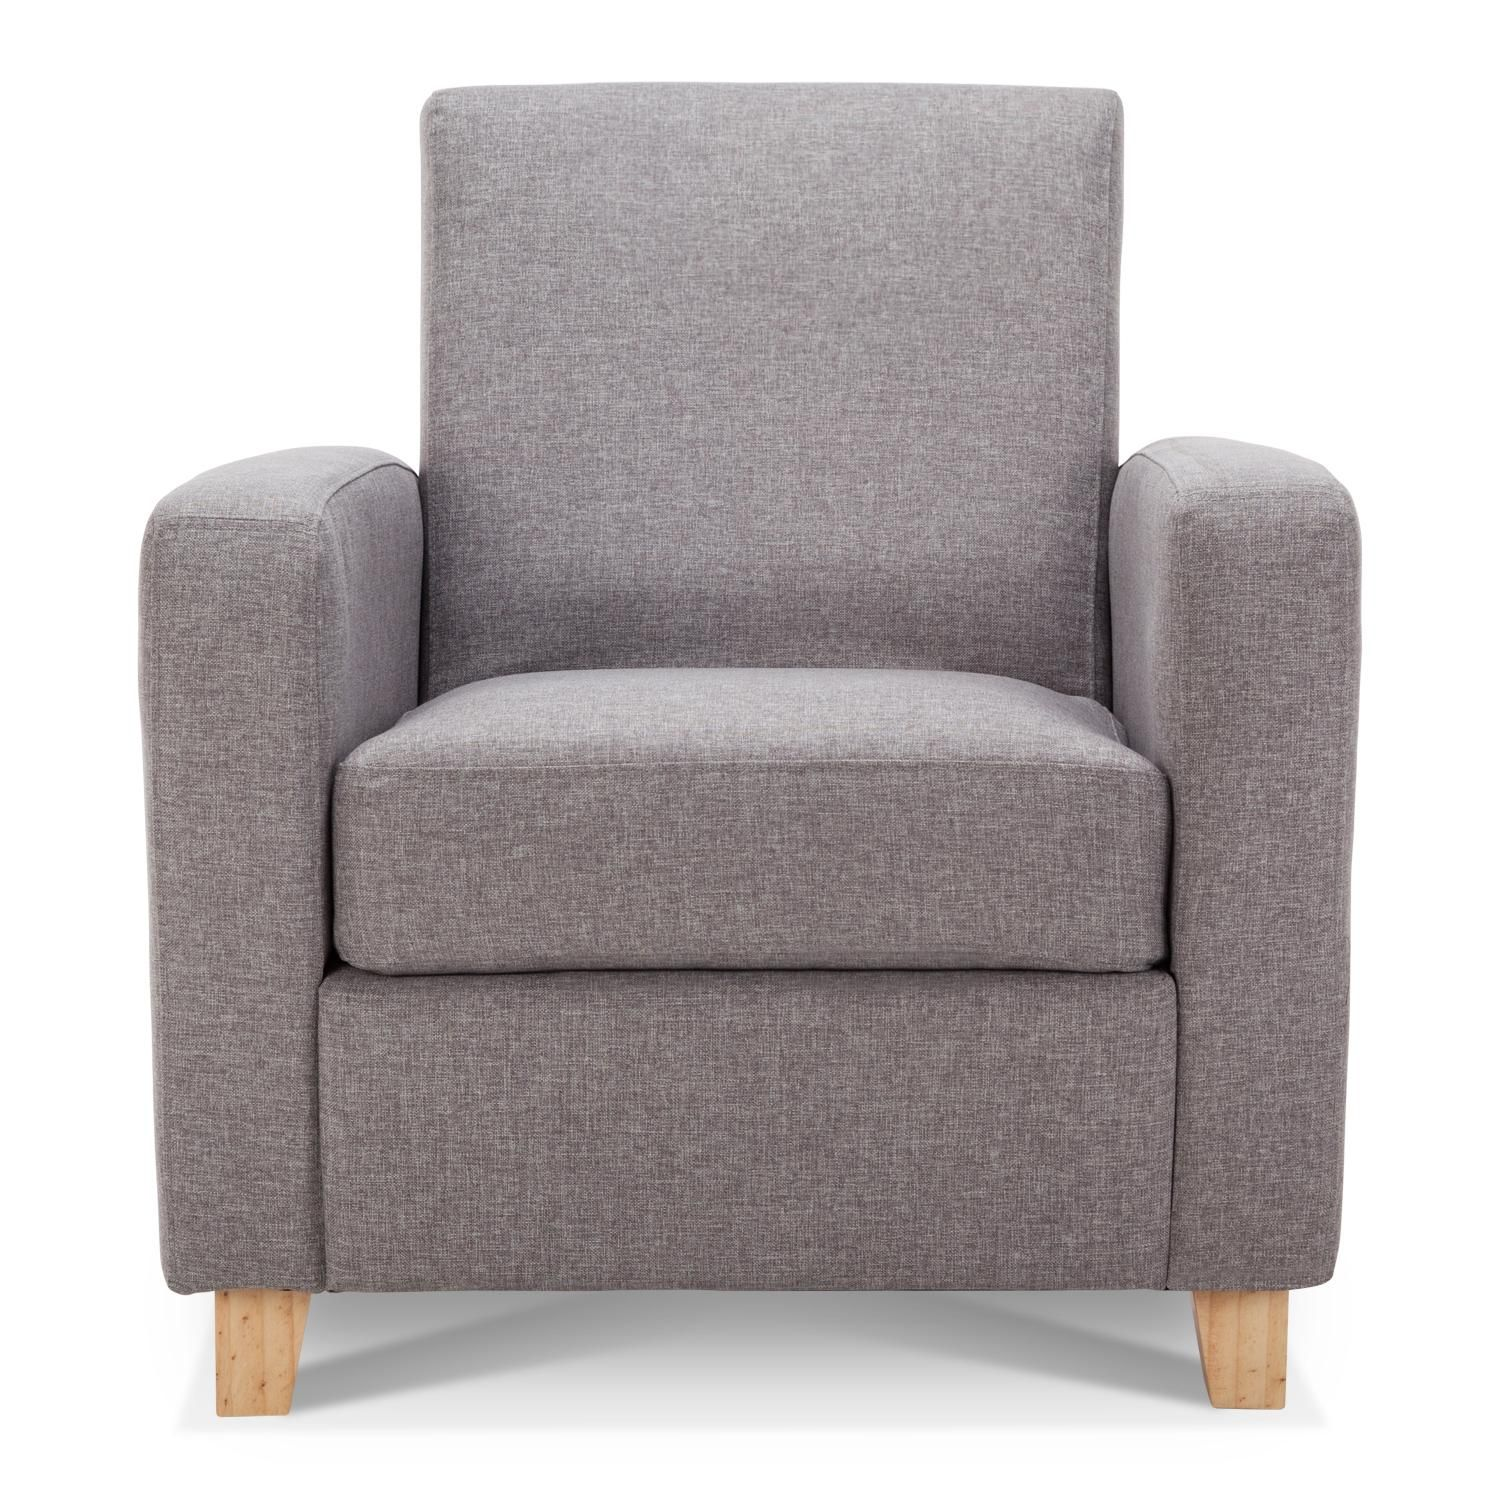 armchairs uk | armchairs for sale | armchairs | armchairs ...